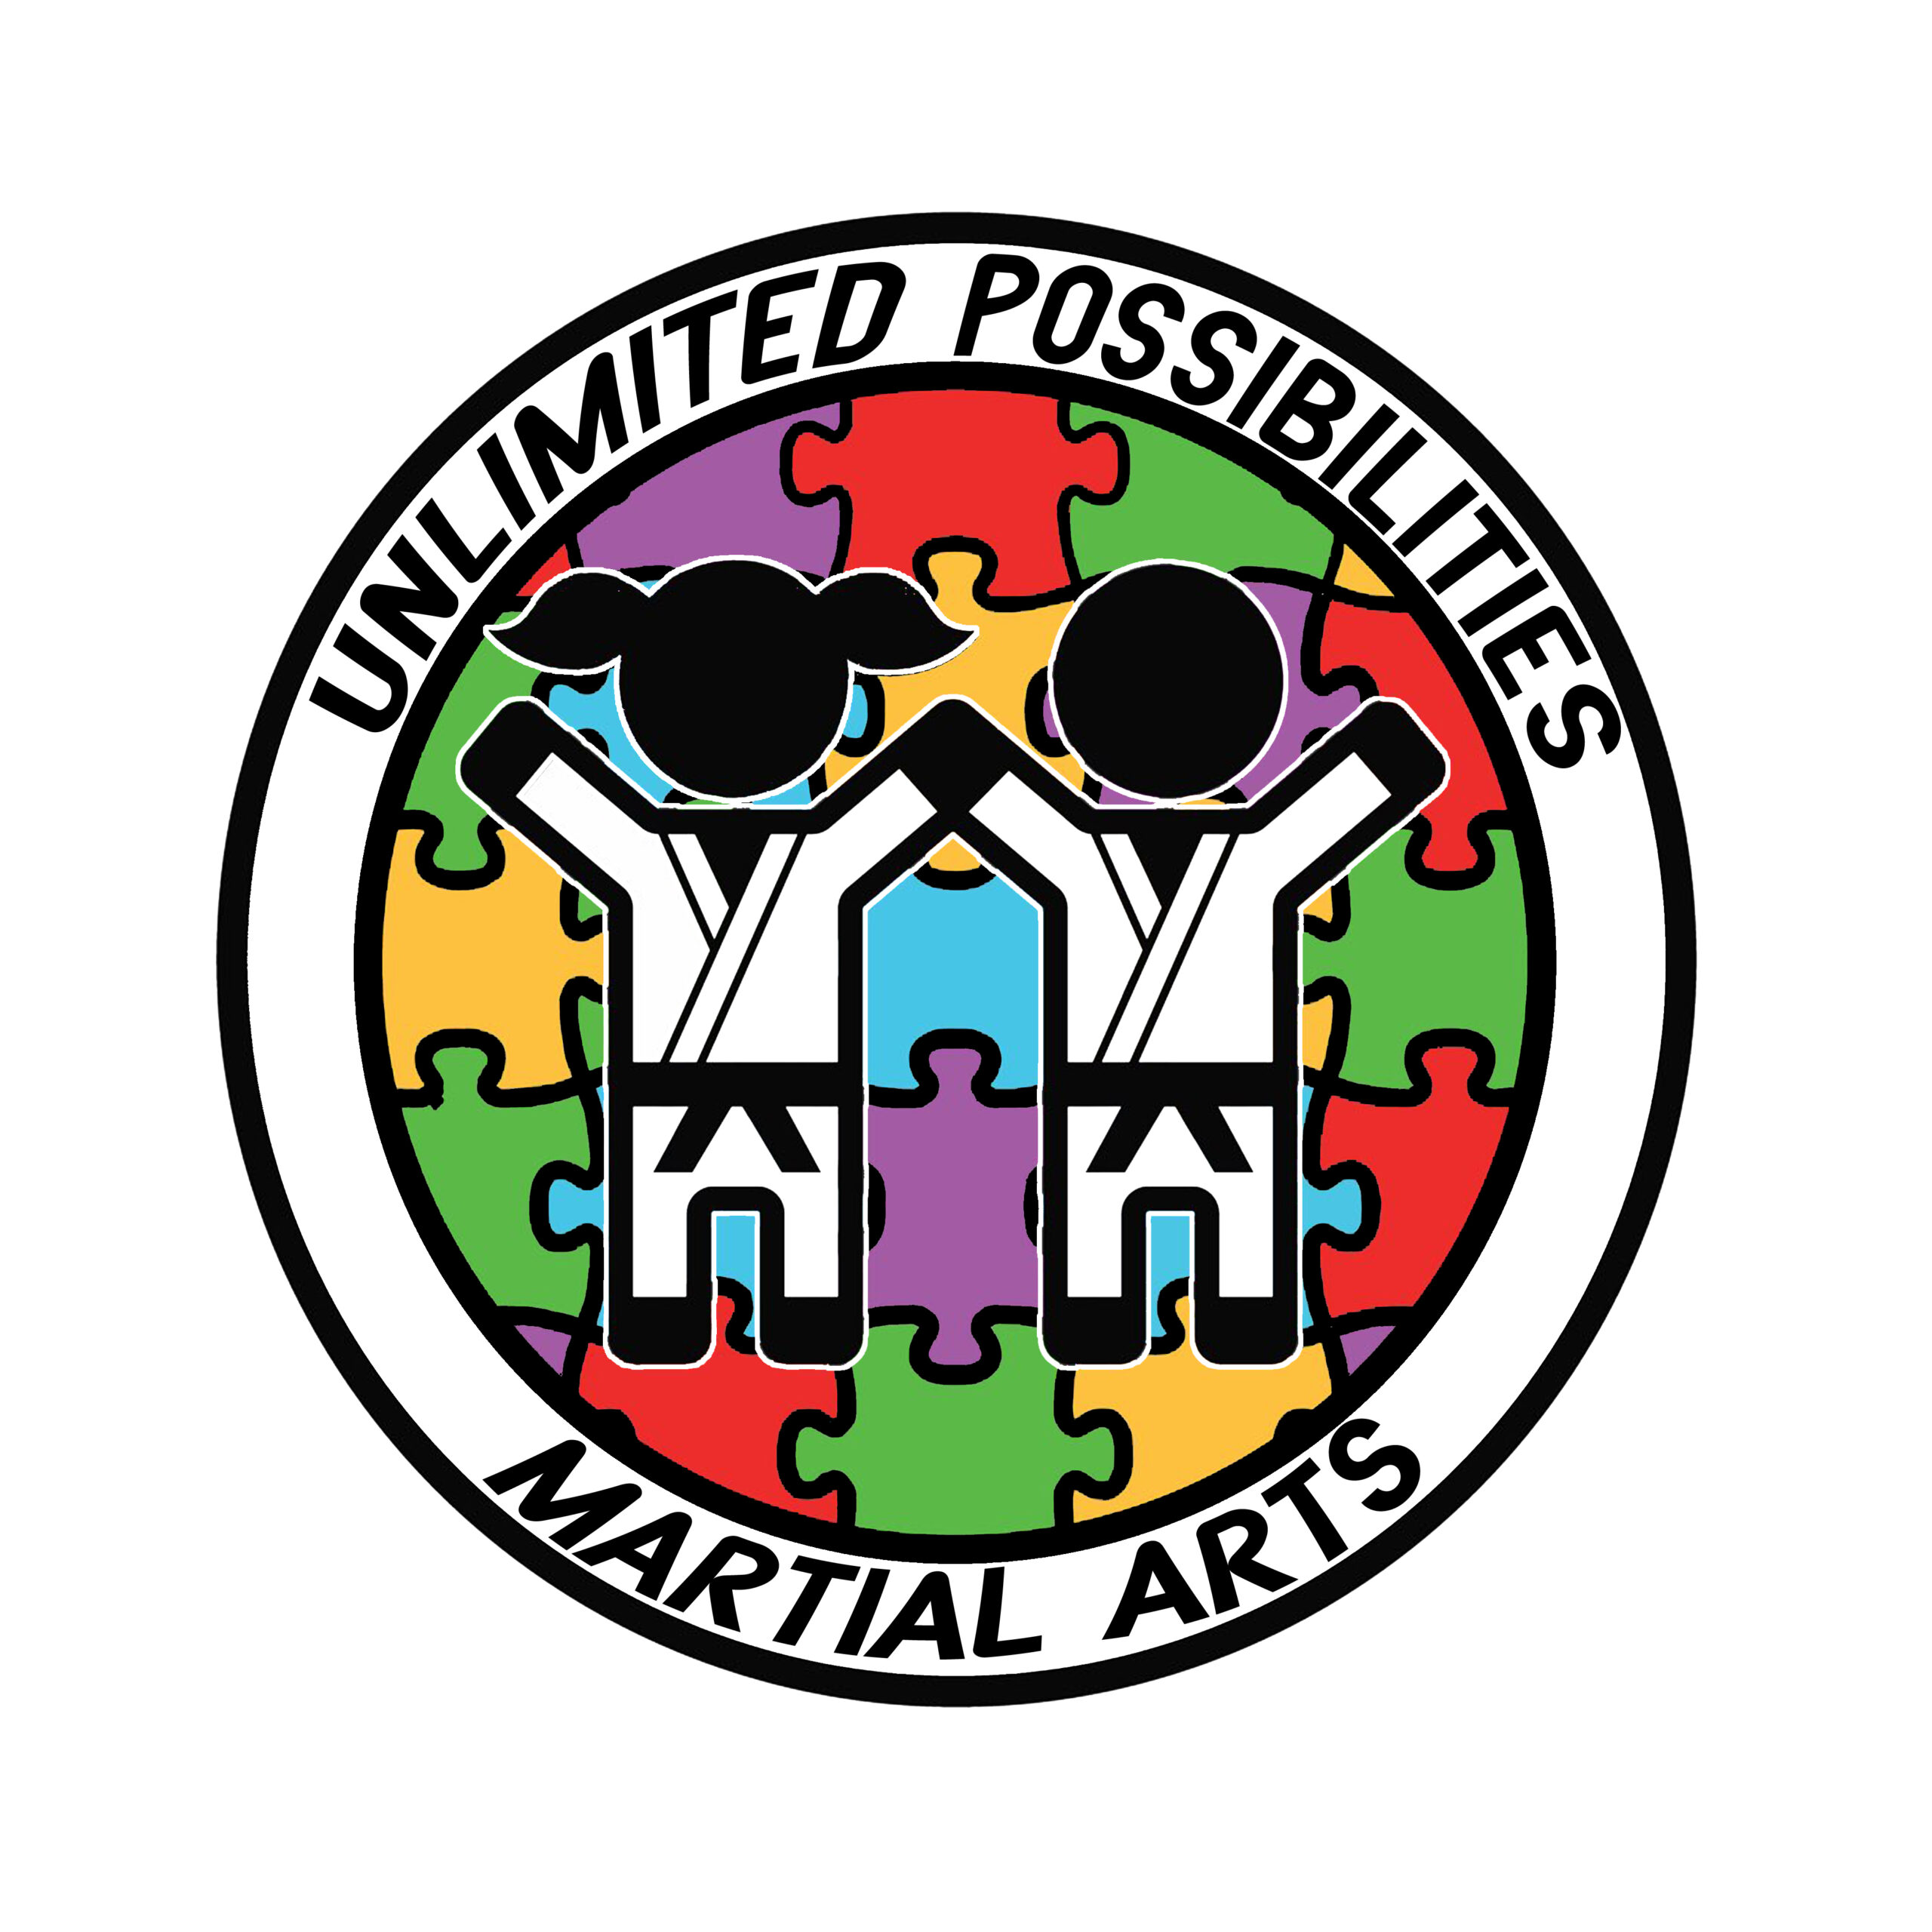 Unlimited Possibilities Martial Arts